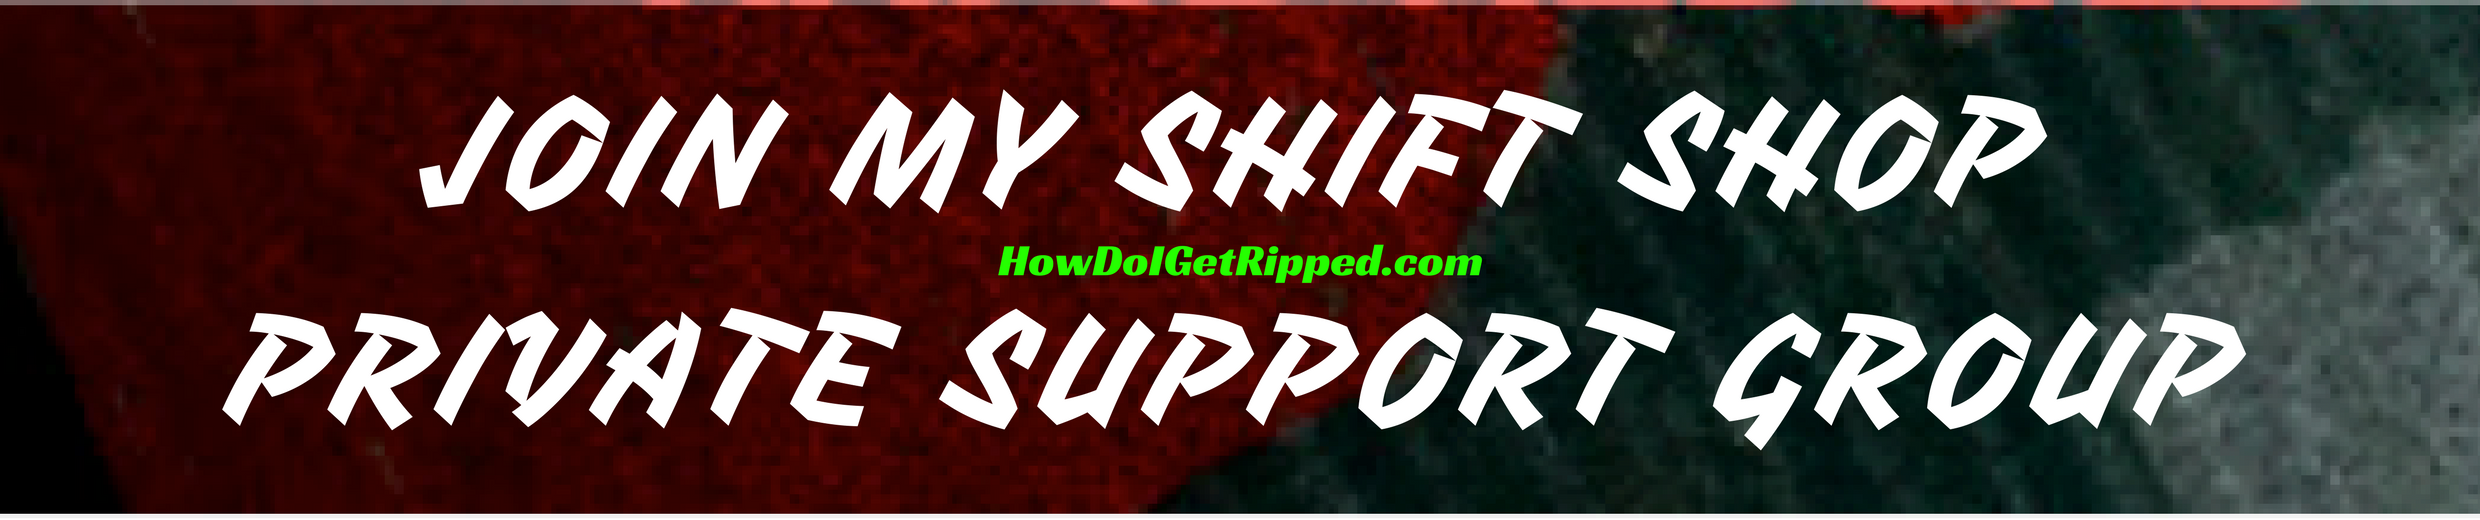 Shift Shop Review Support Group